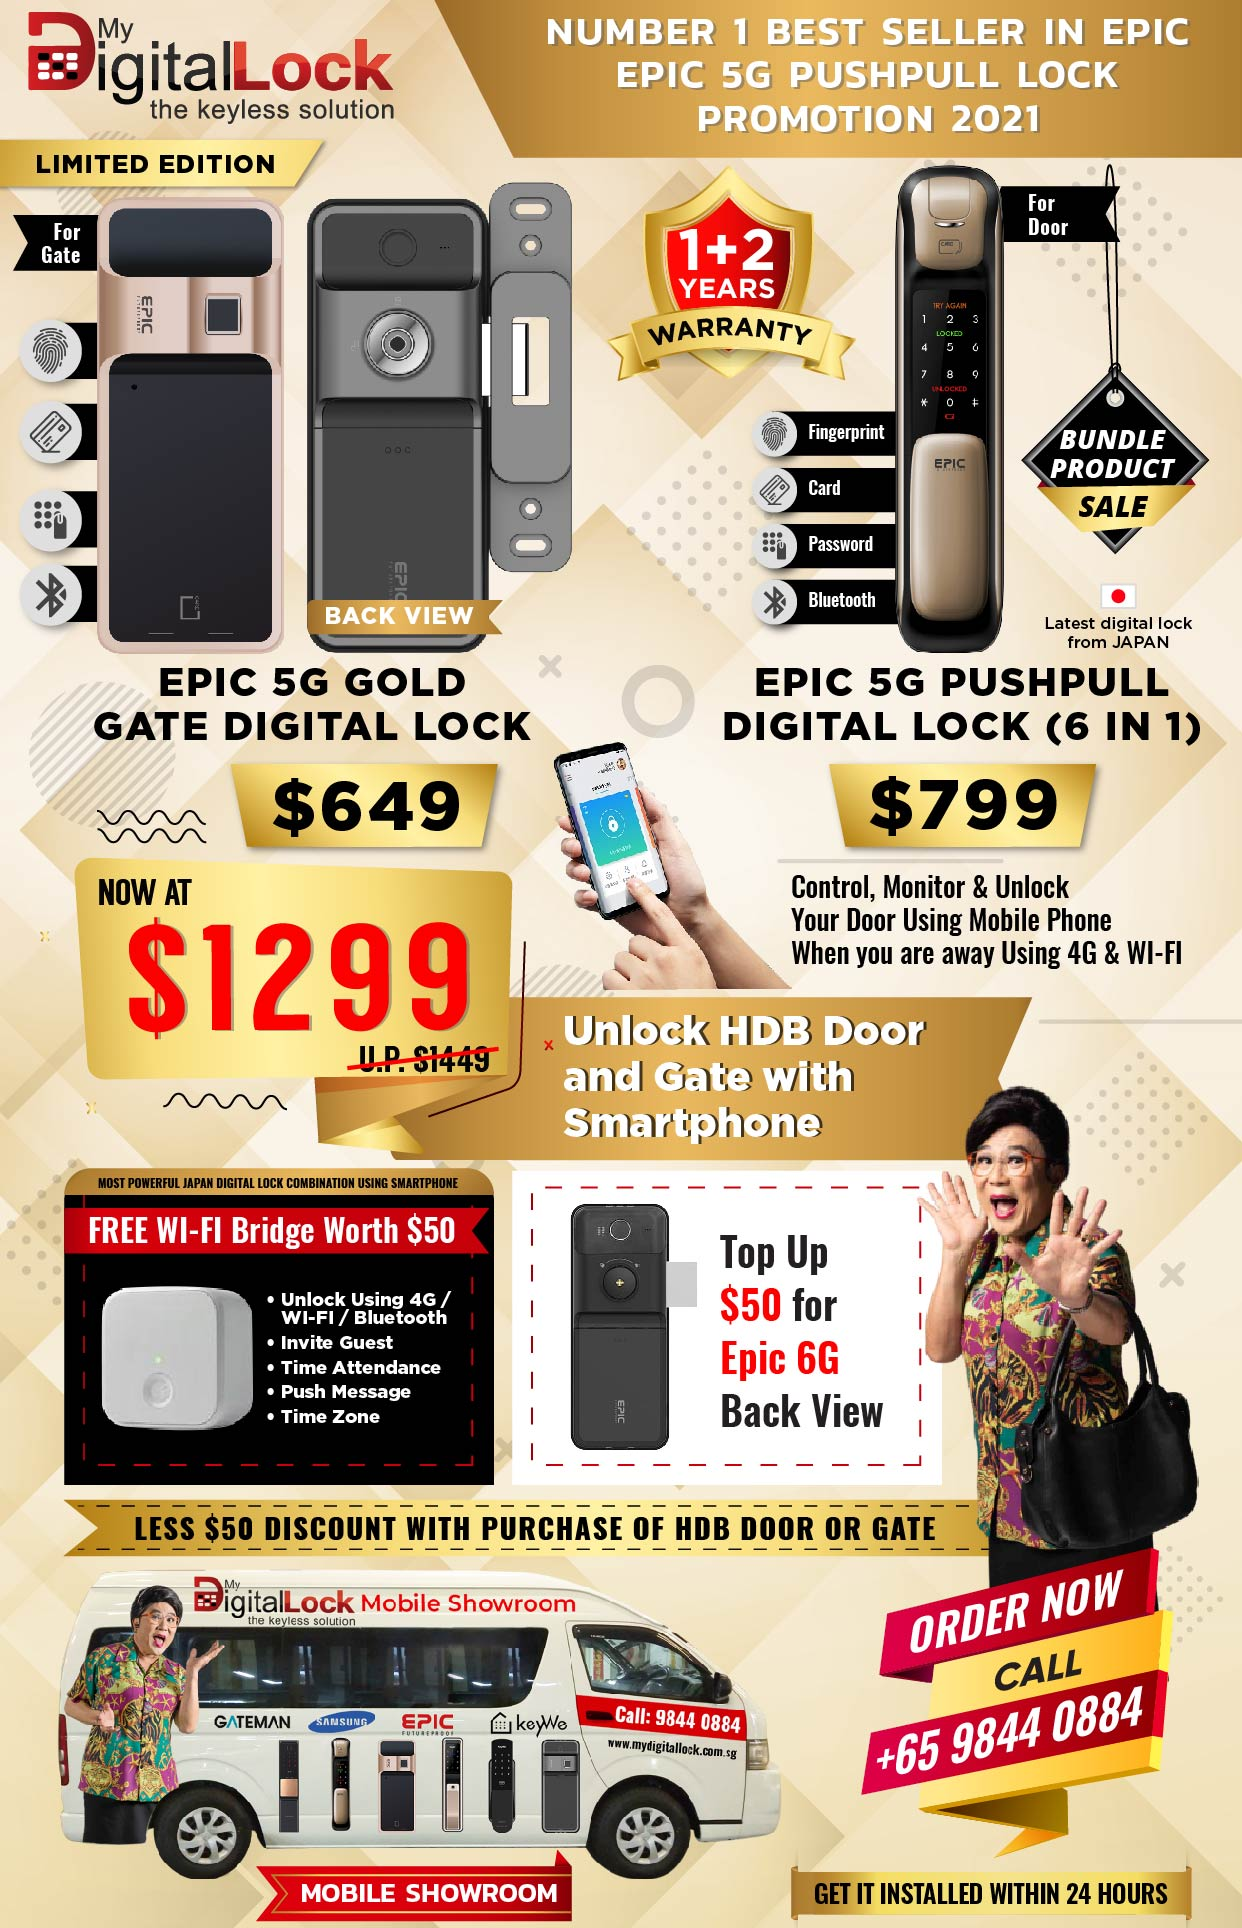 Number 1 epic Best Selling Digitallock